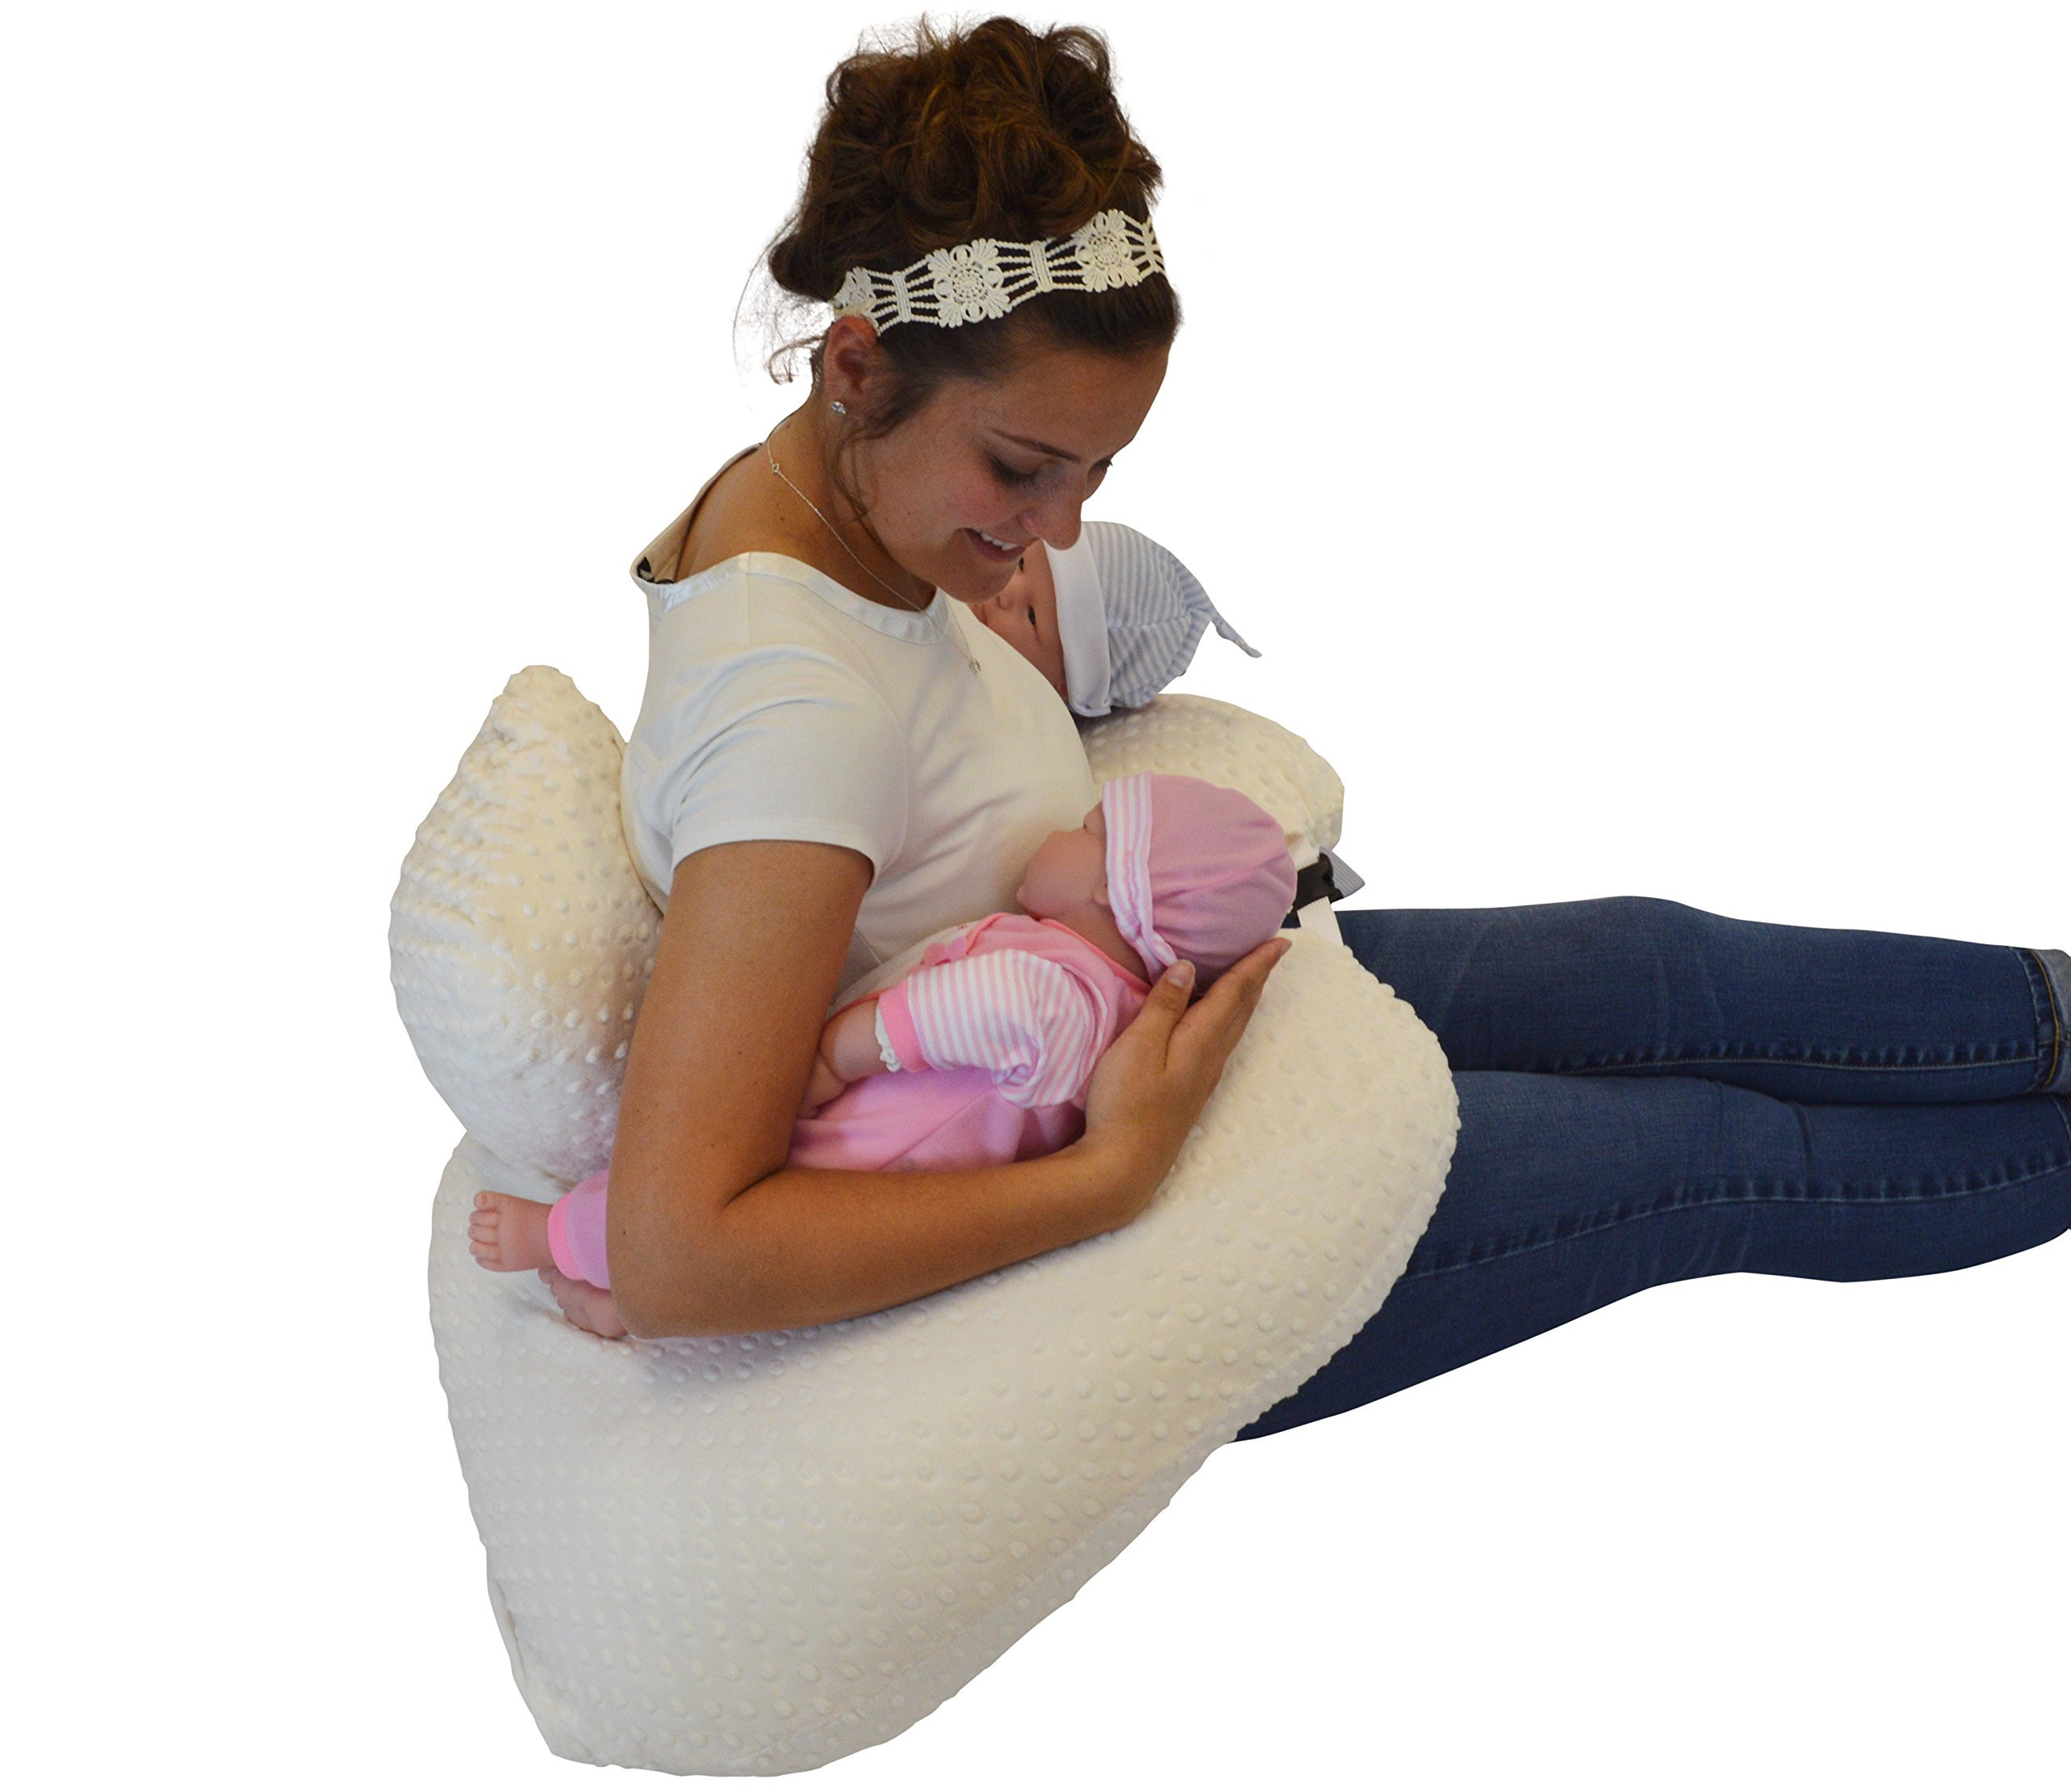 THE TWIN Z PILLOW - CREAM - 6 uses in 1 Twin Pillow ! Breastfeeding, Bottlefeeding, Tummy Time, Reflux, Support and Pregnancy Pillow! CUDDLE CREAM DOTS by Twin Z PIllow (Image #4)